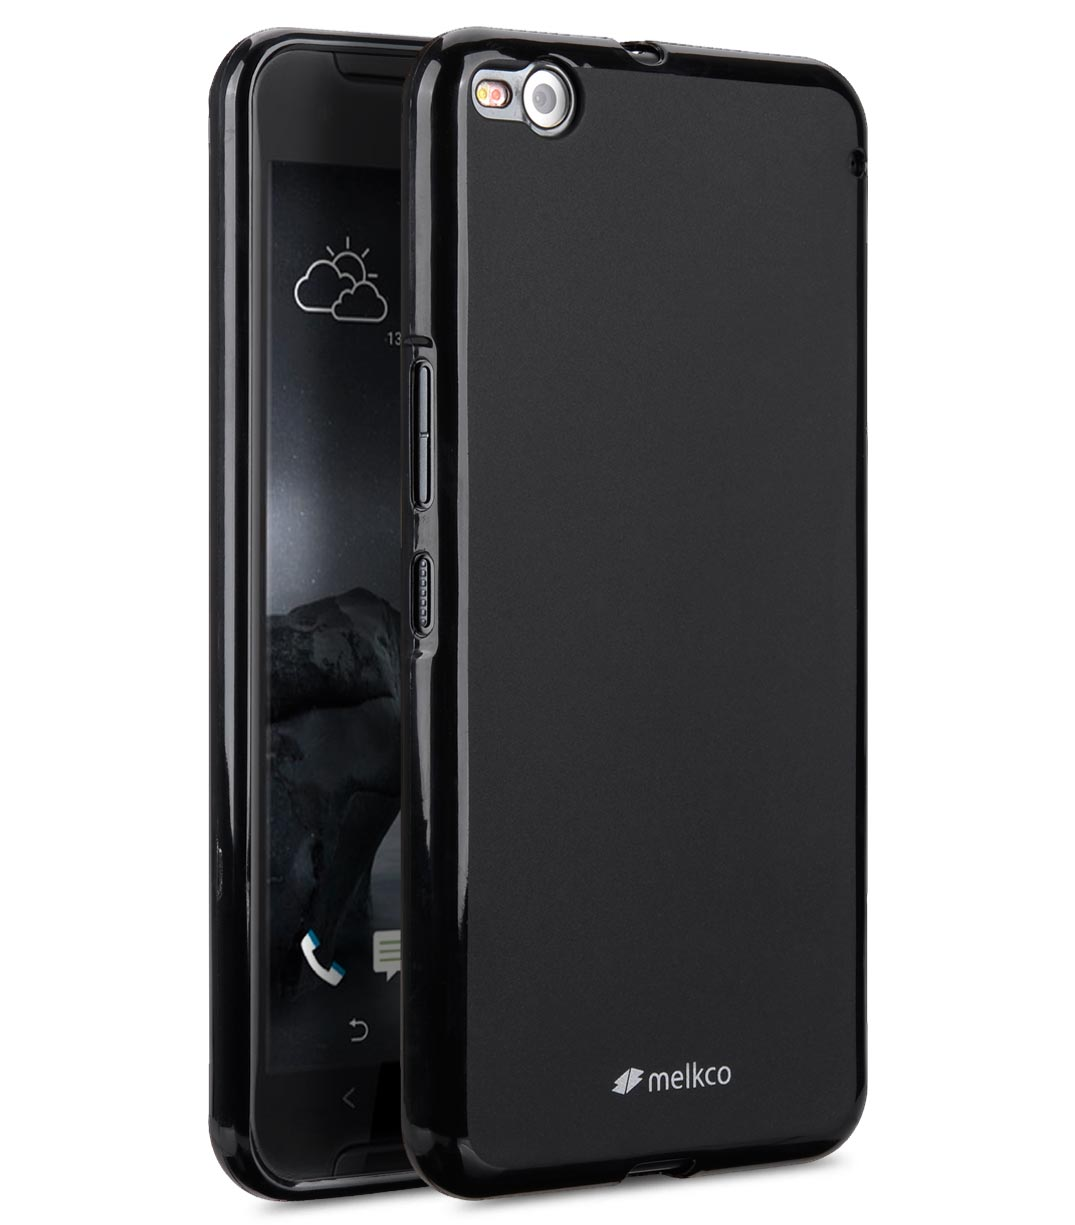 Melkco - Poly Jacket TPU (Ver.2) cases for HTC One X9 - (Black Mat)